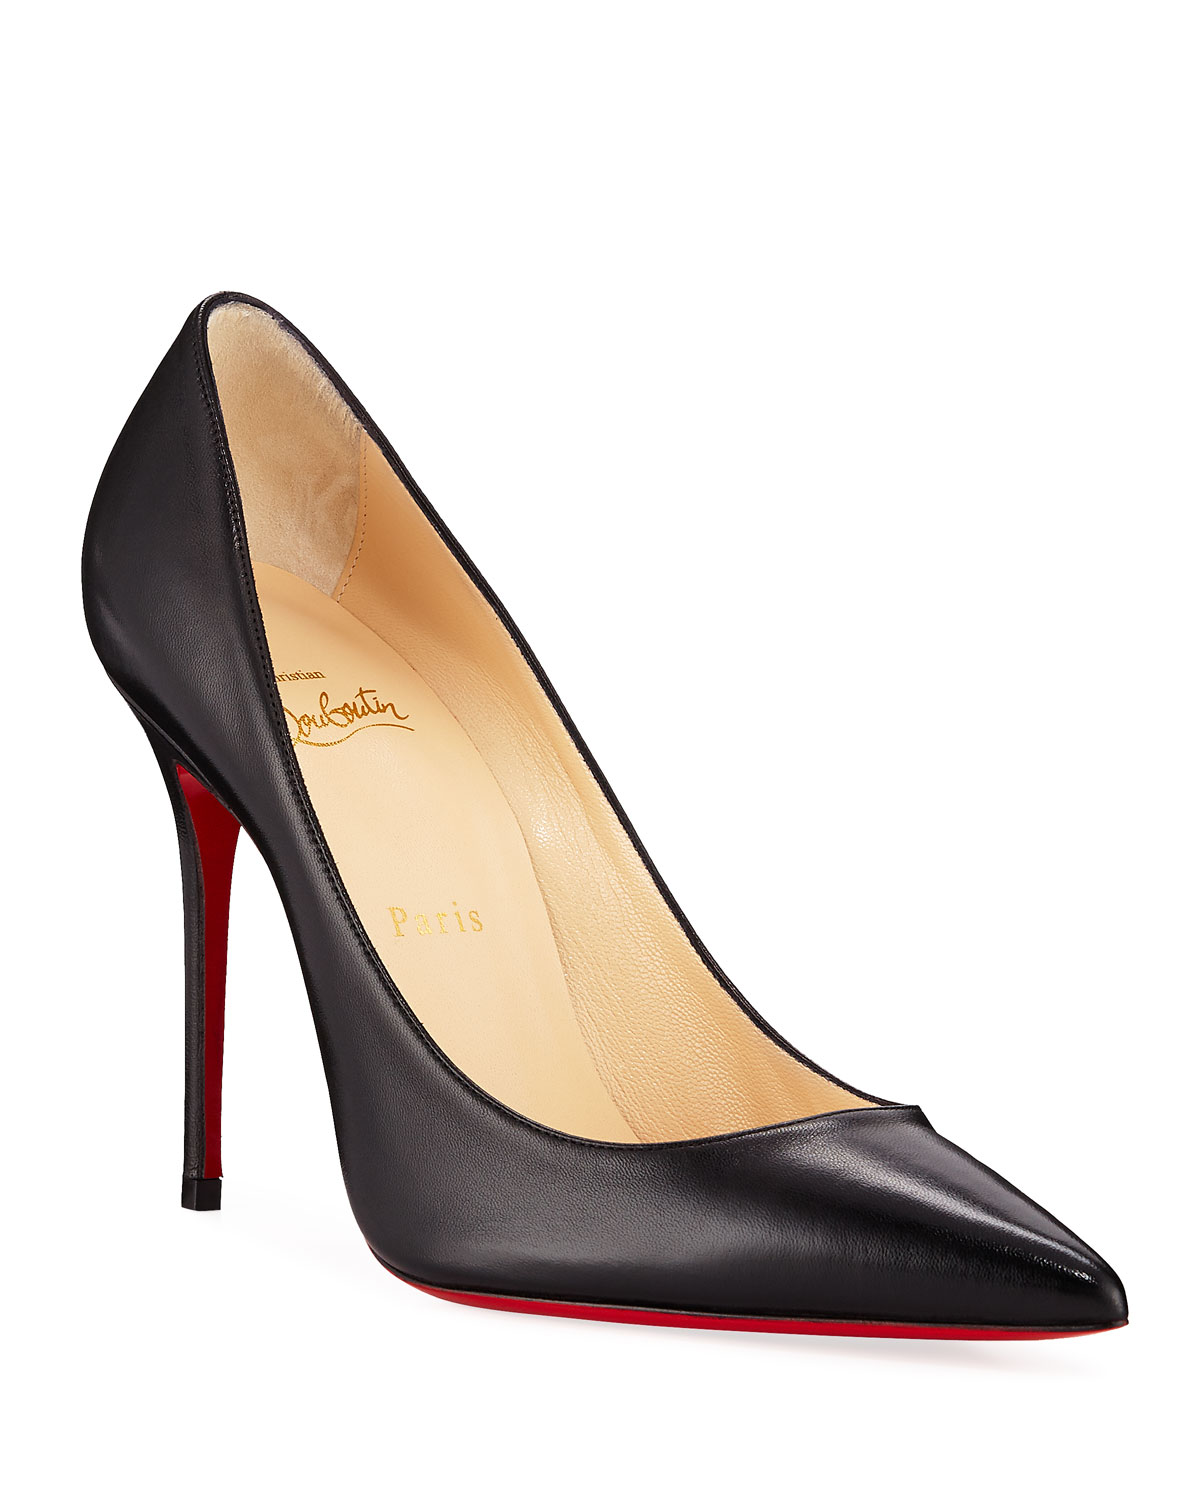 1d7ebd1d396 Christian Louboutin Decollette Red Sole Pumps